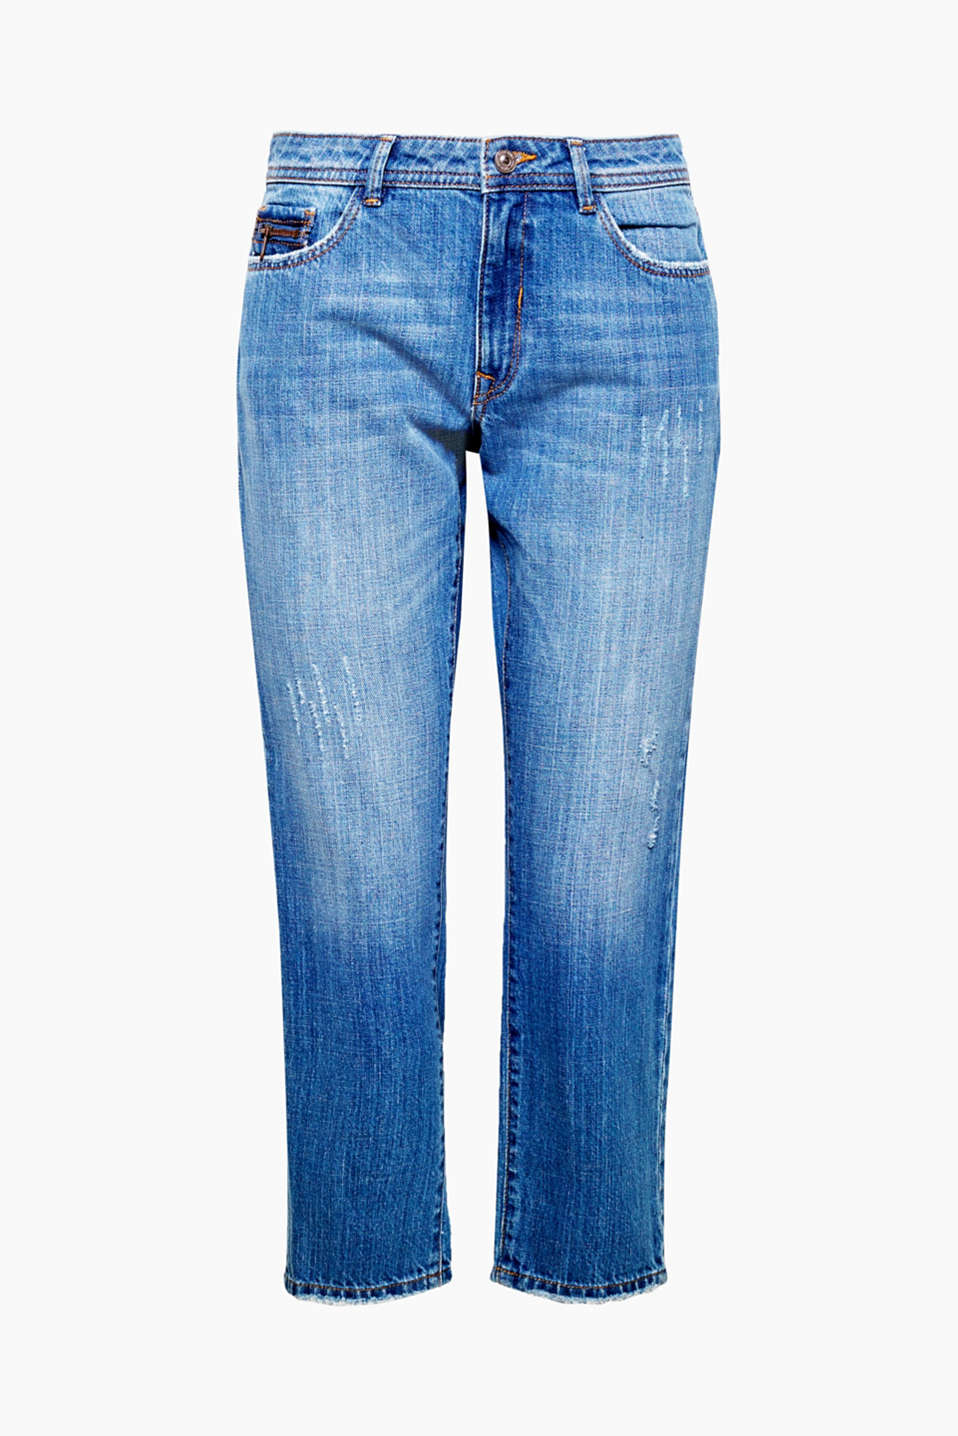 The fashionably cropped cut and pre-worn finish make these jeans perfect for a casually cool, on-trend look.